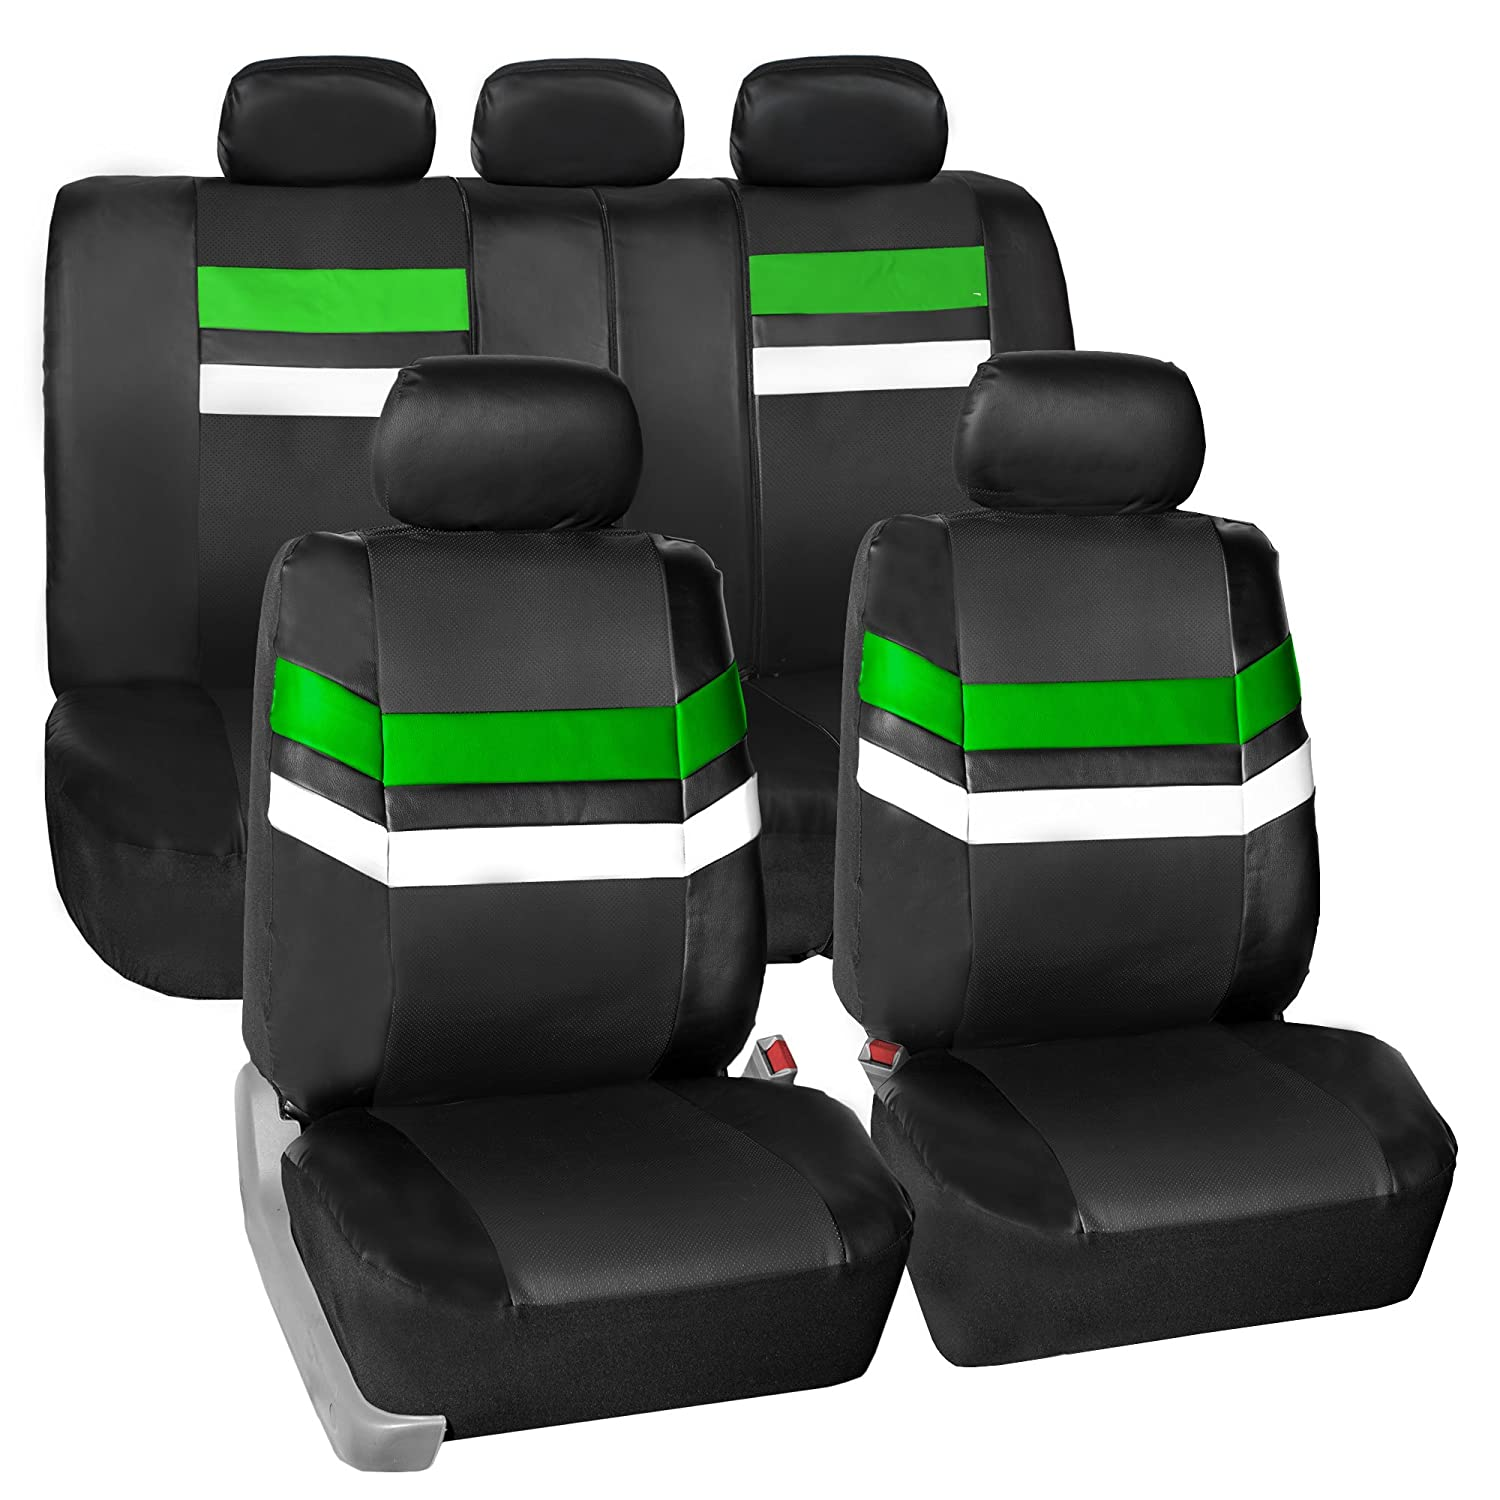 FH Group Leather Full Set Seat Covers Gray Airbag Safe PU006GRAY115 /& Split Bench Ready